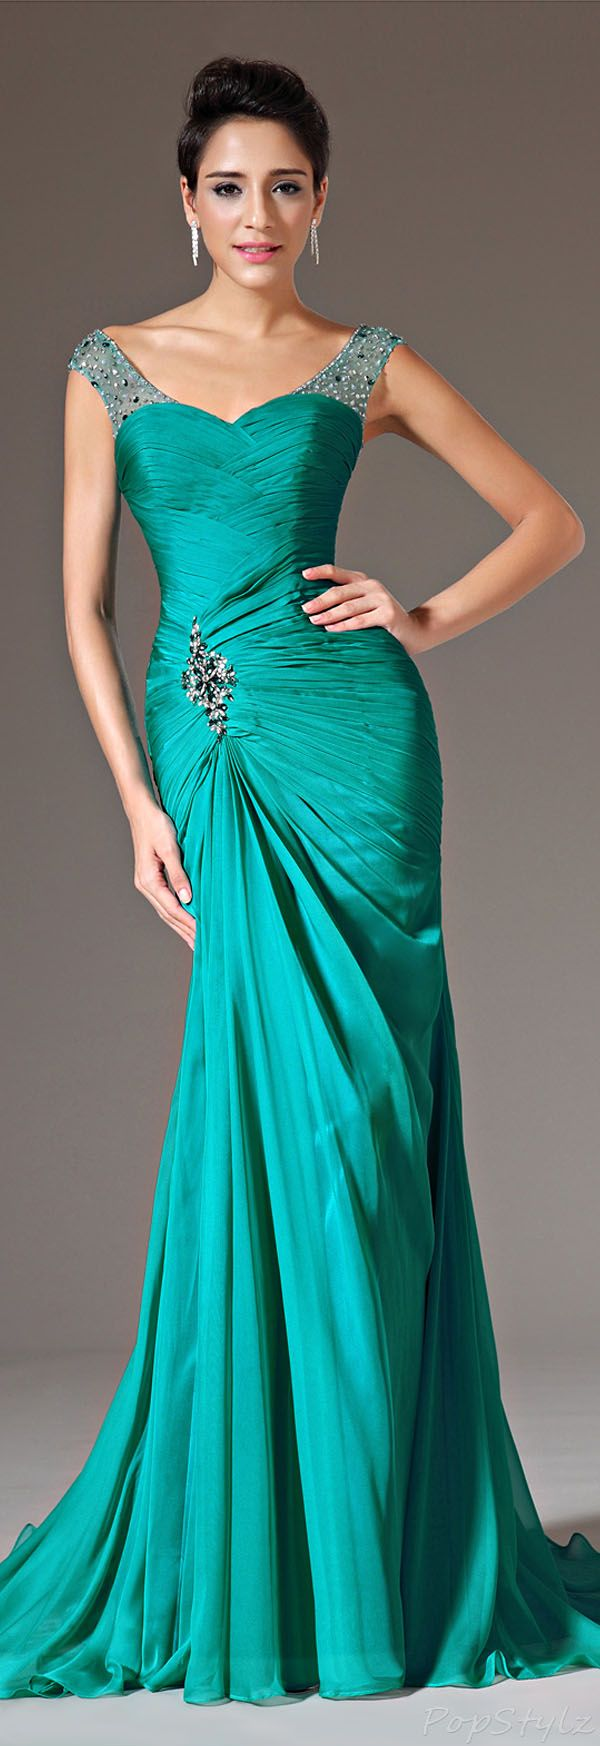 Beautiful evening gowns 25